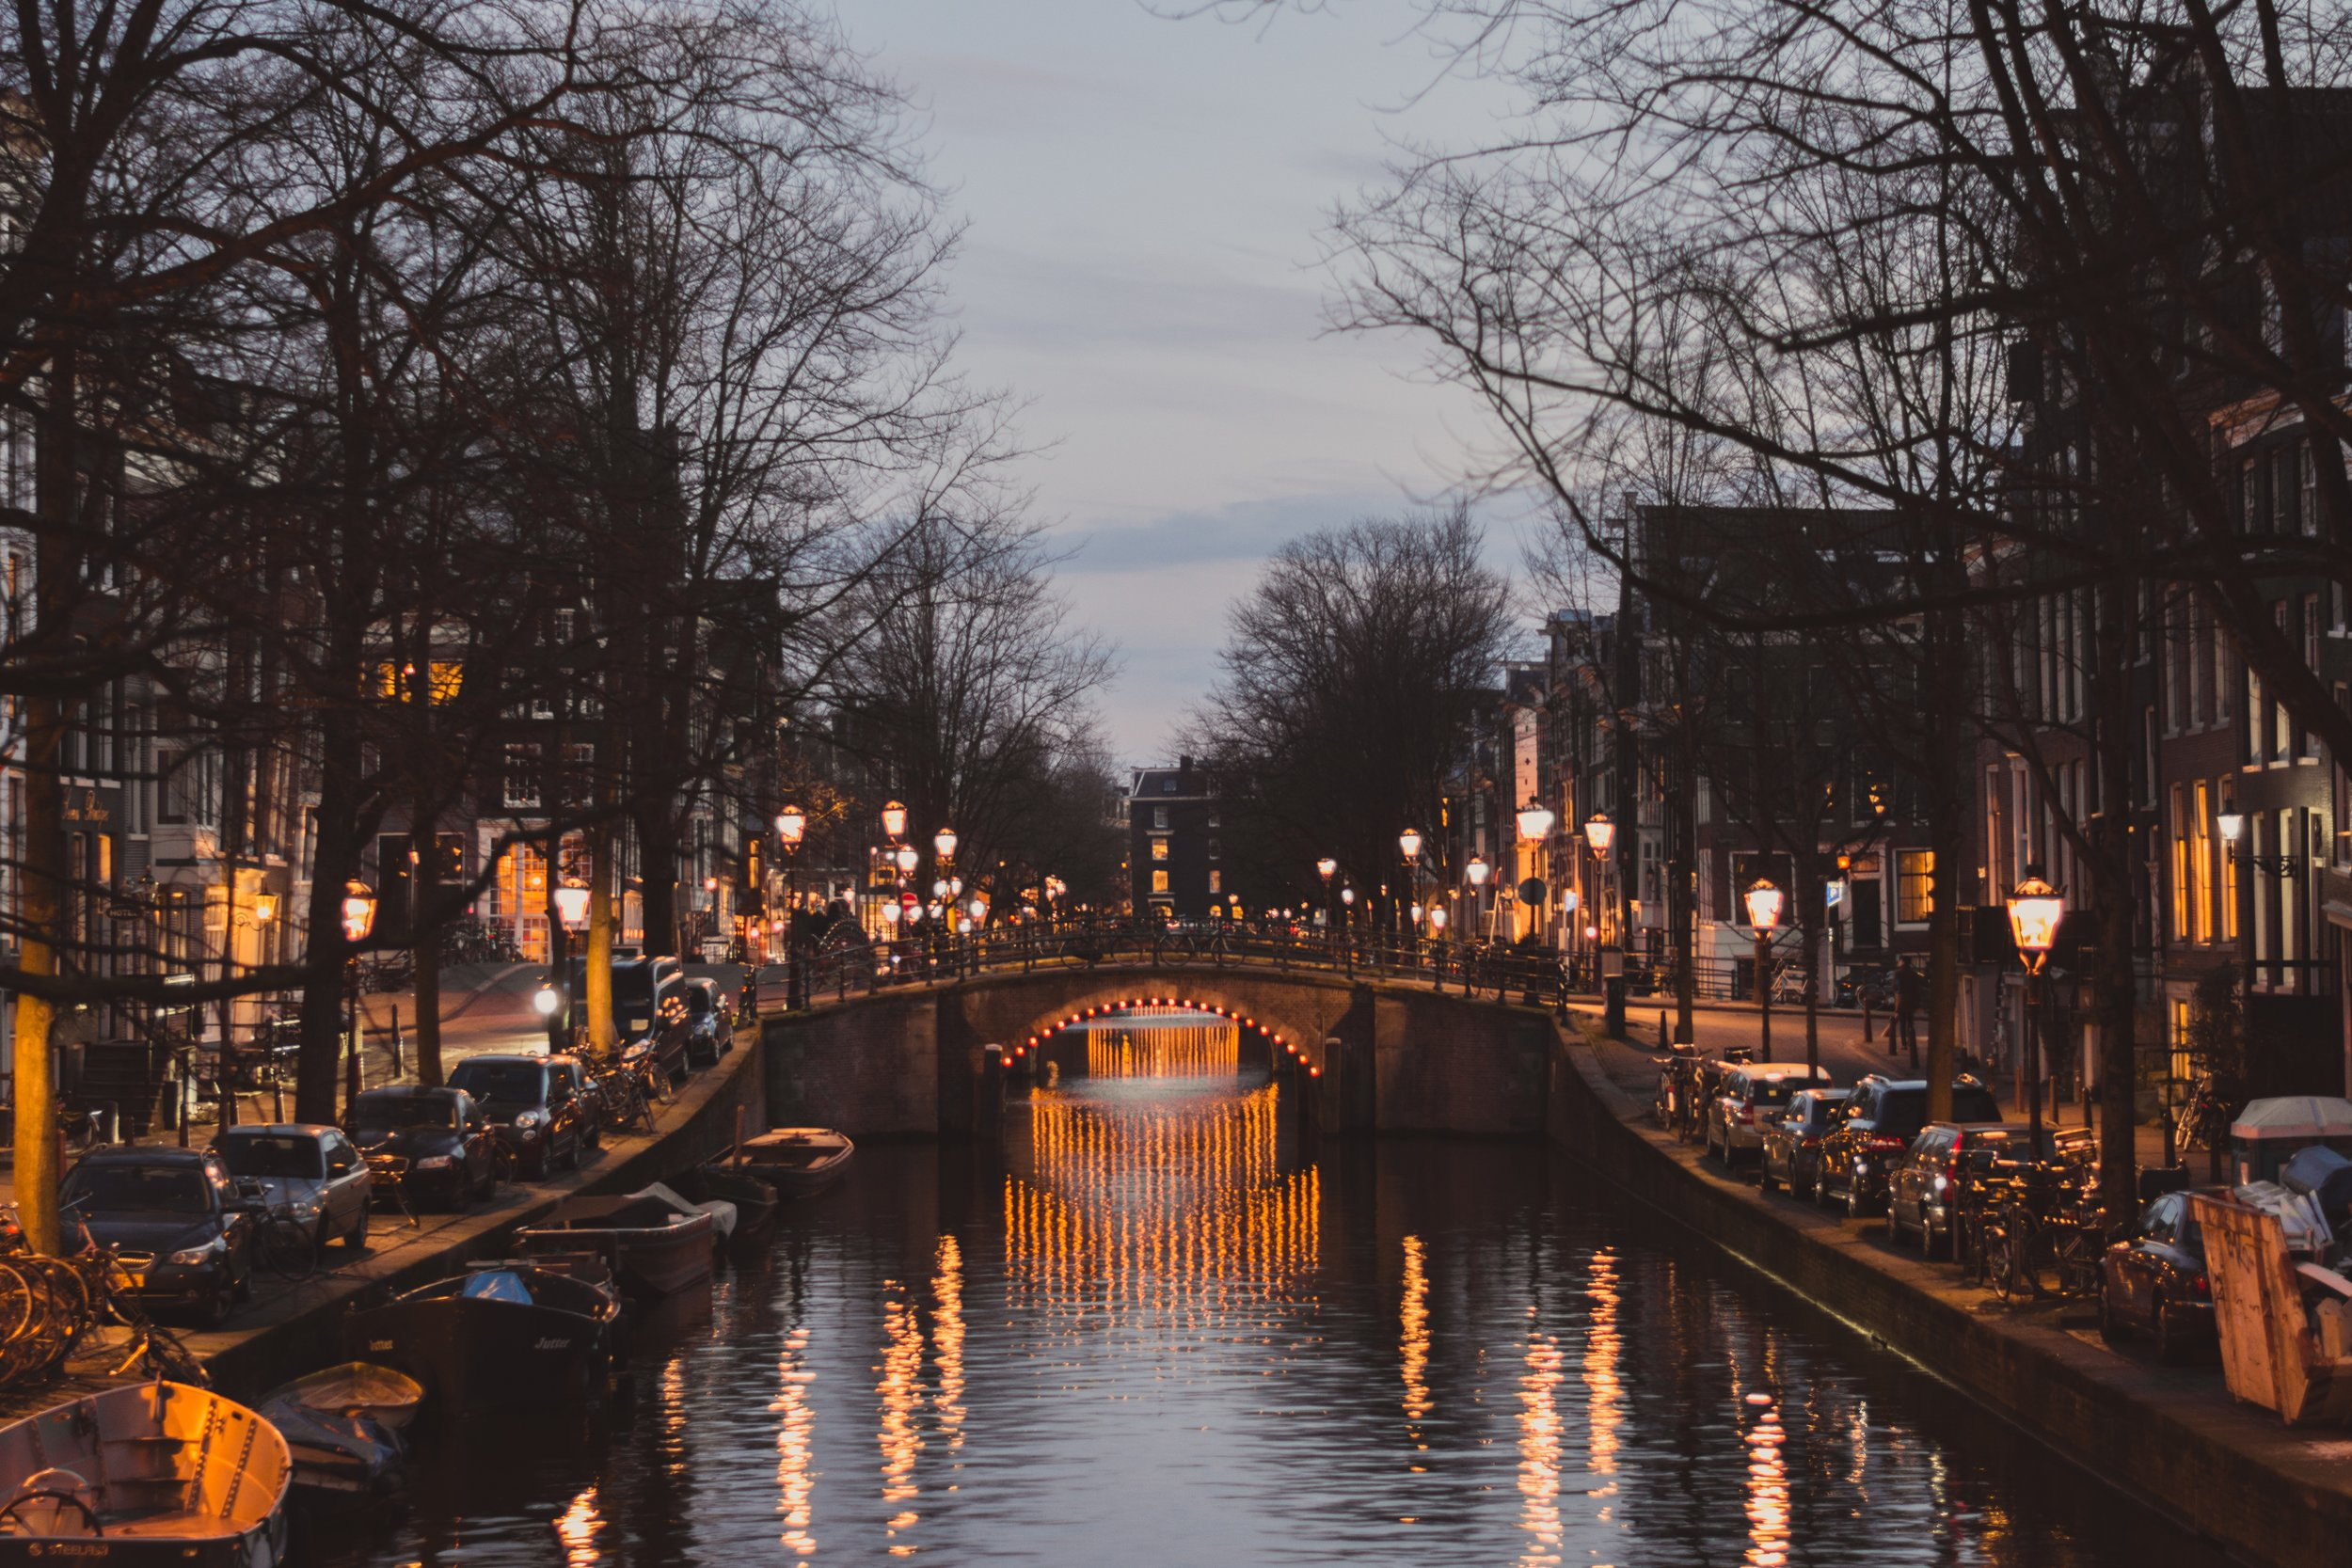 The canals of Amsterdam are incredible and seemingly endless…